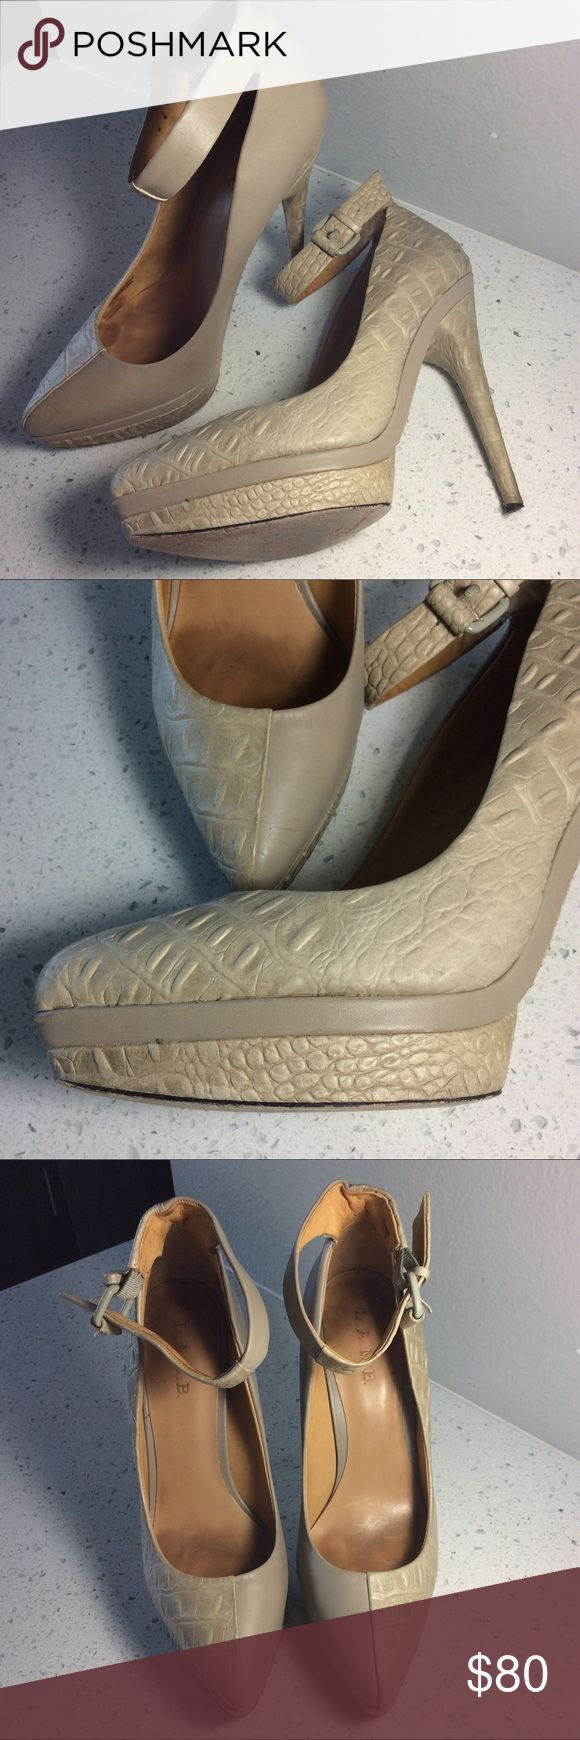 """L.A.M.B sheepskin ankle strap detail heels ❤️💋❤️ Beautiful shoes, color neutral/ nude with sheepskin texture mixed with plain ,  Rey soft inside and comfortable , size 10, adjustable ankle strap , heels 5"""" high (Heels need clean) still in great good condition, has wear on the bottom soles and light wear inside L.A.M.B. Shoes Heels"""